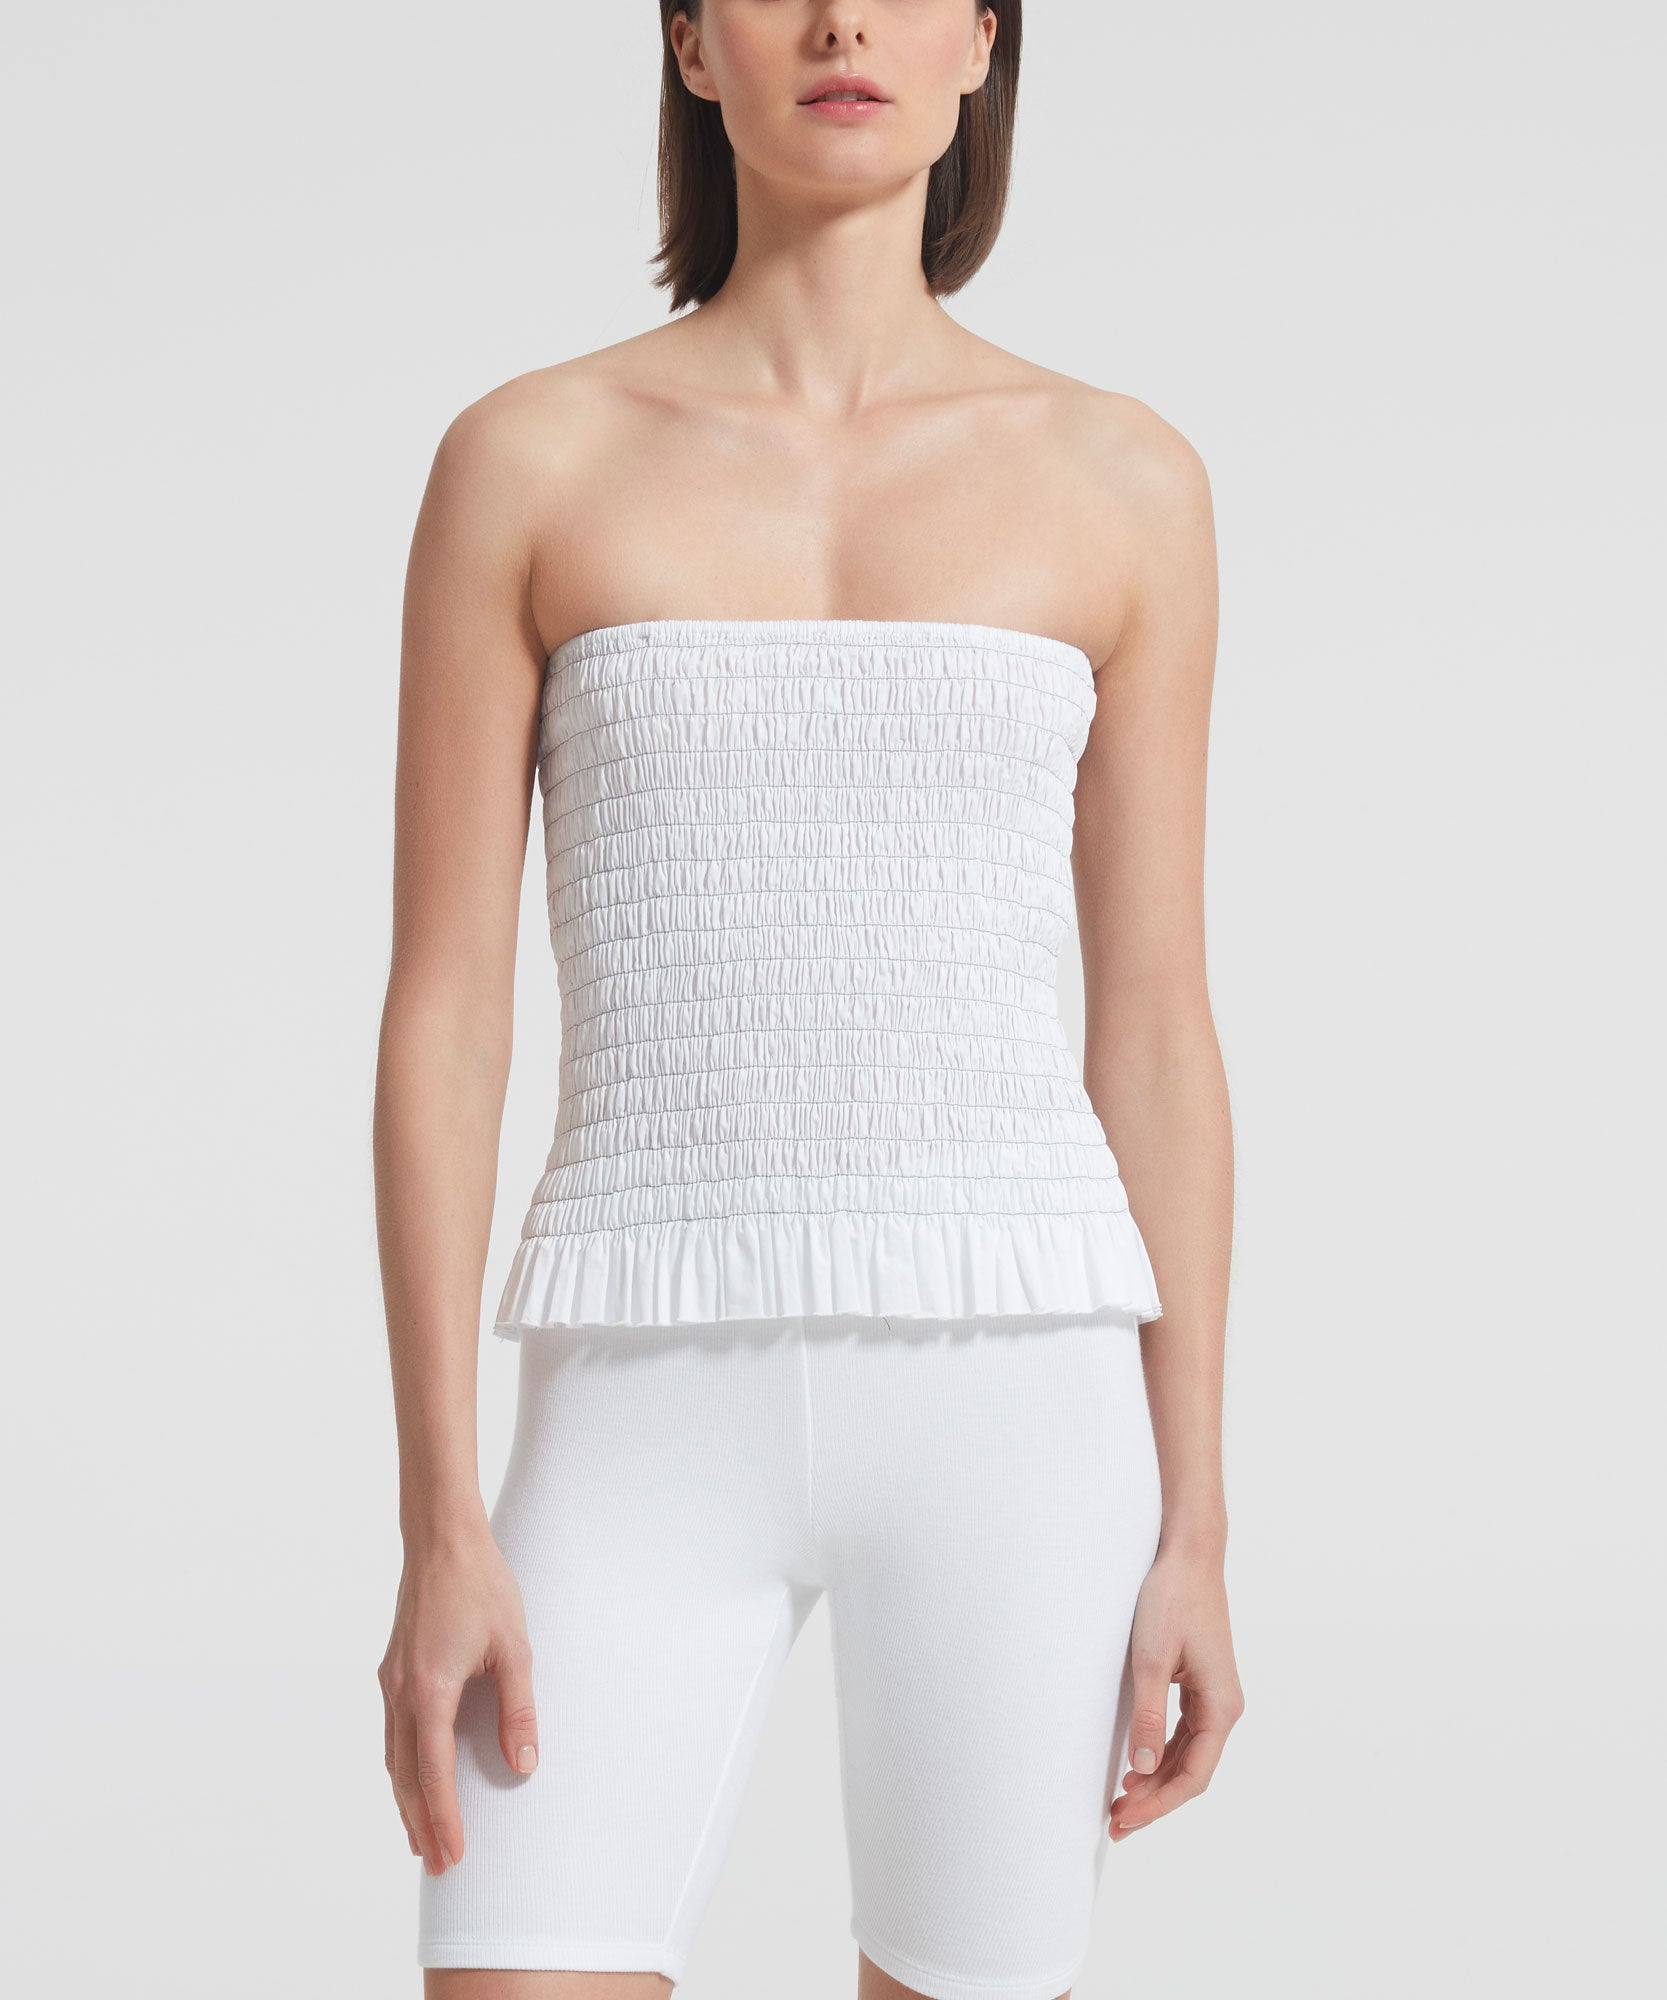 White Shirred Cotton Poplin Bustier Top - Women's Cotton Poplin Strapless Top by ATM Anthony Thomas Melillo